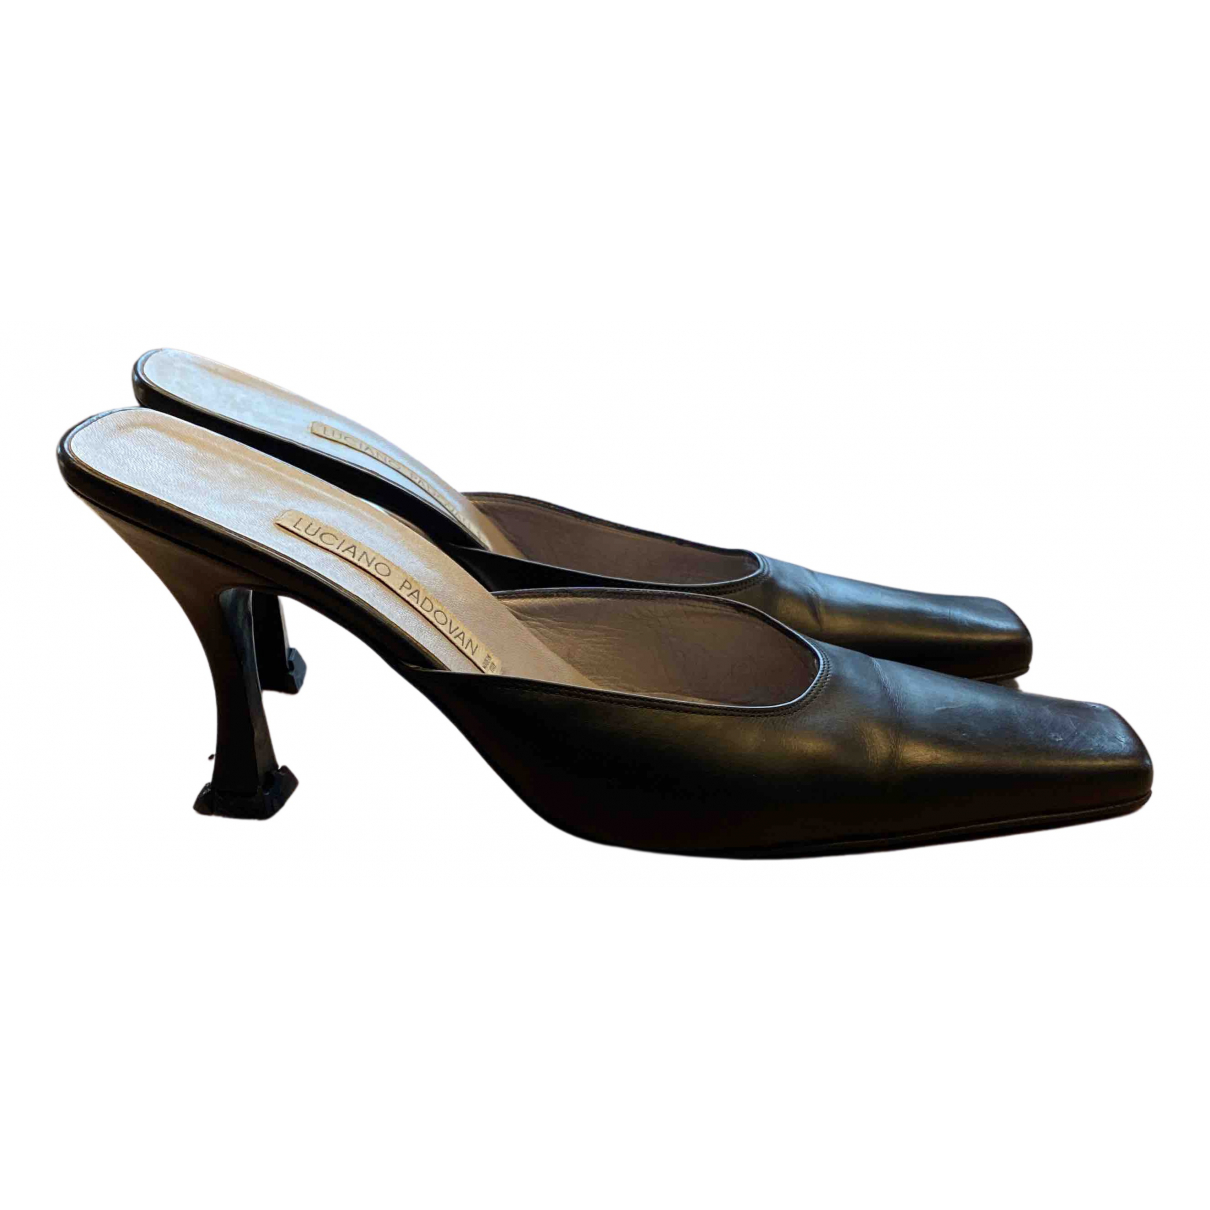 Luciano Padovan N Black Leather Heels for Women 39.5 IT